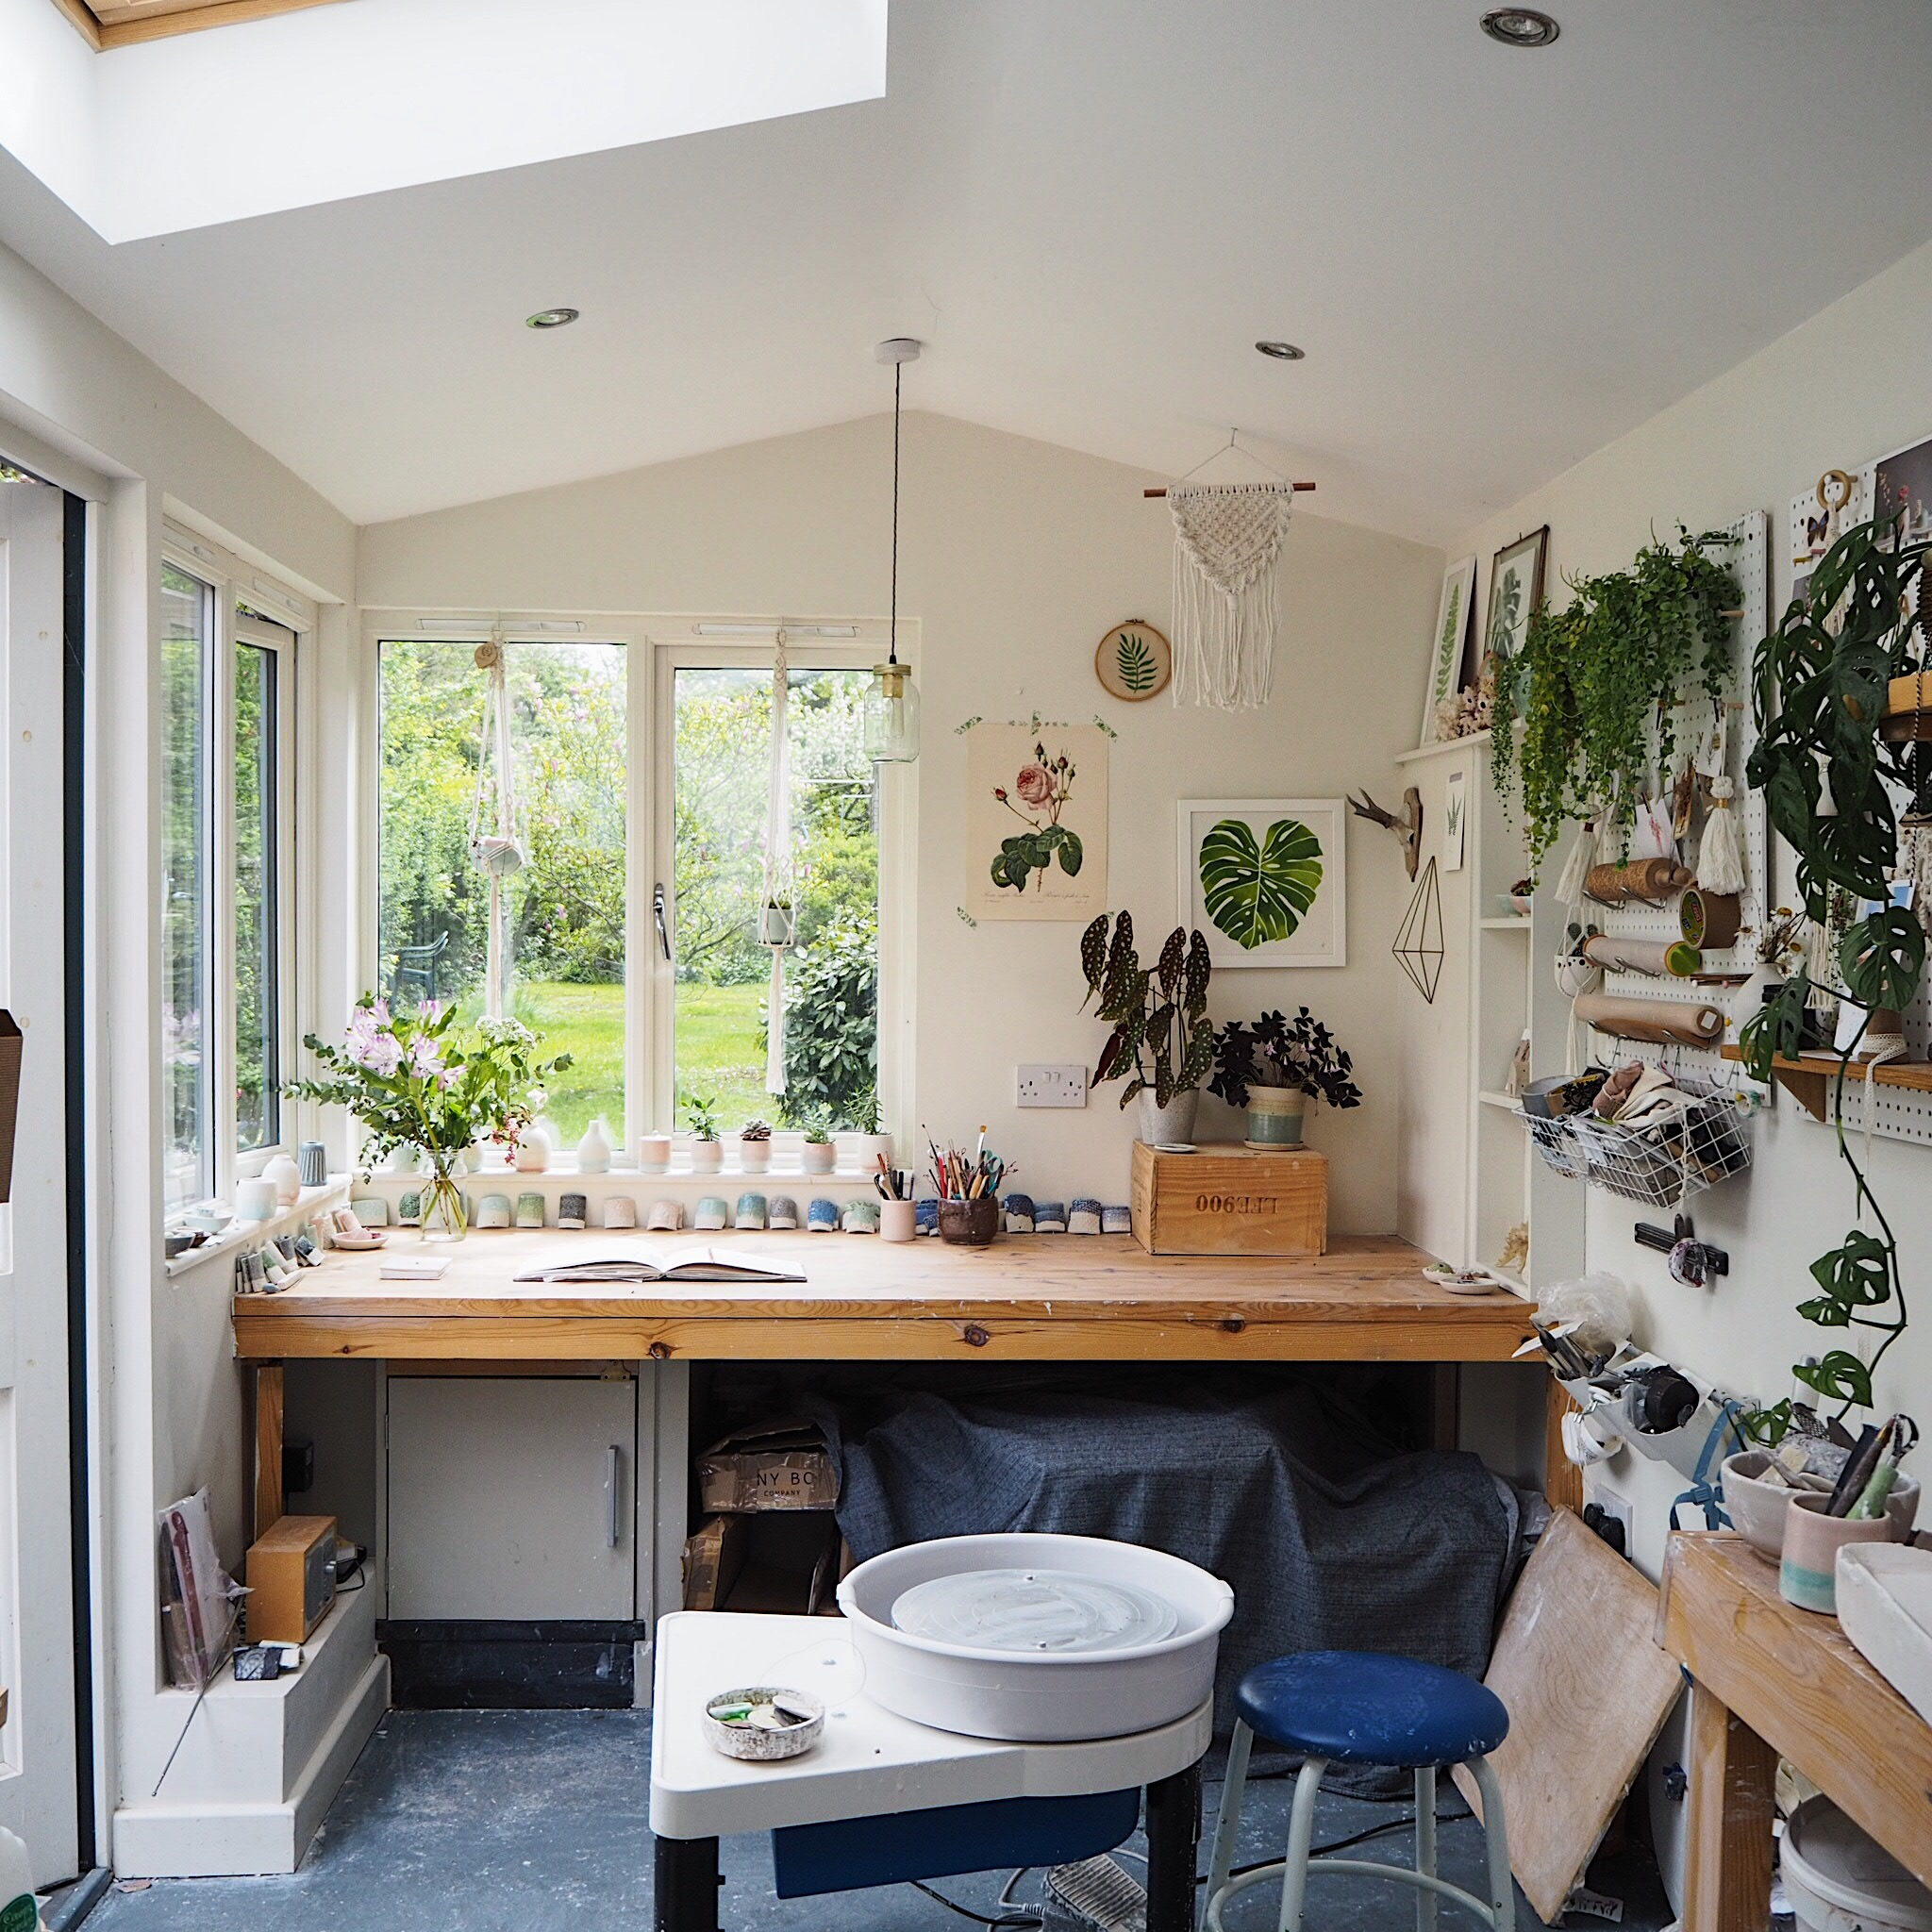 Studio of Kt Robbins Ceramics - i love being able to see my garden and listen to the birds singing as I work.